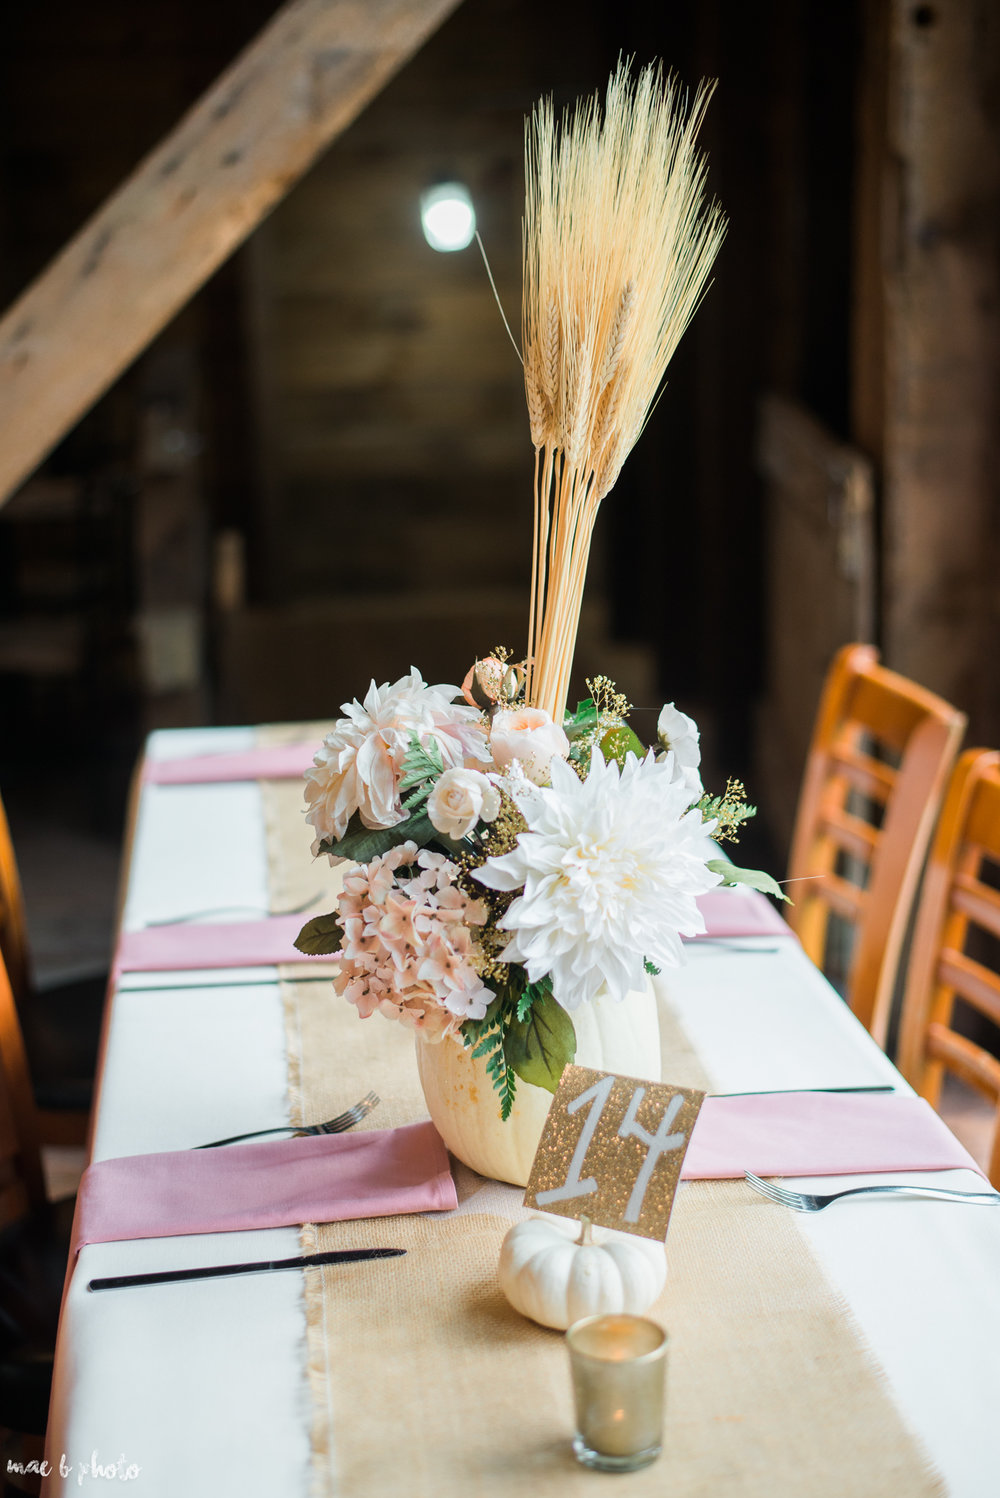 Sarah & Dustin's Rustic Chic Barn Wedding at Hartford Hill Winery in Hartford, Ohio by Mae B Photo-98.jpg